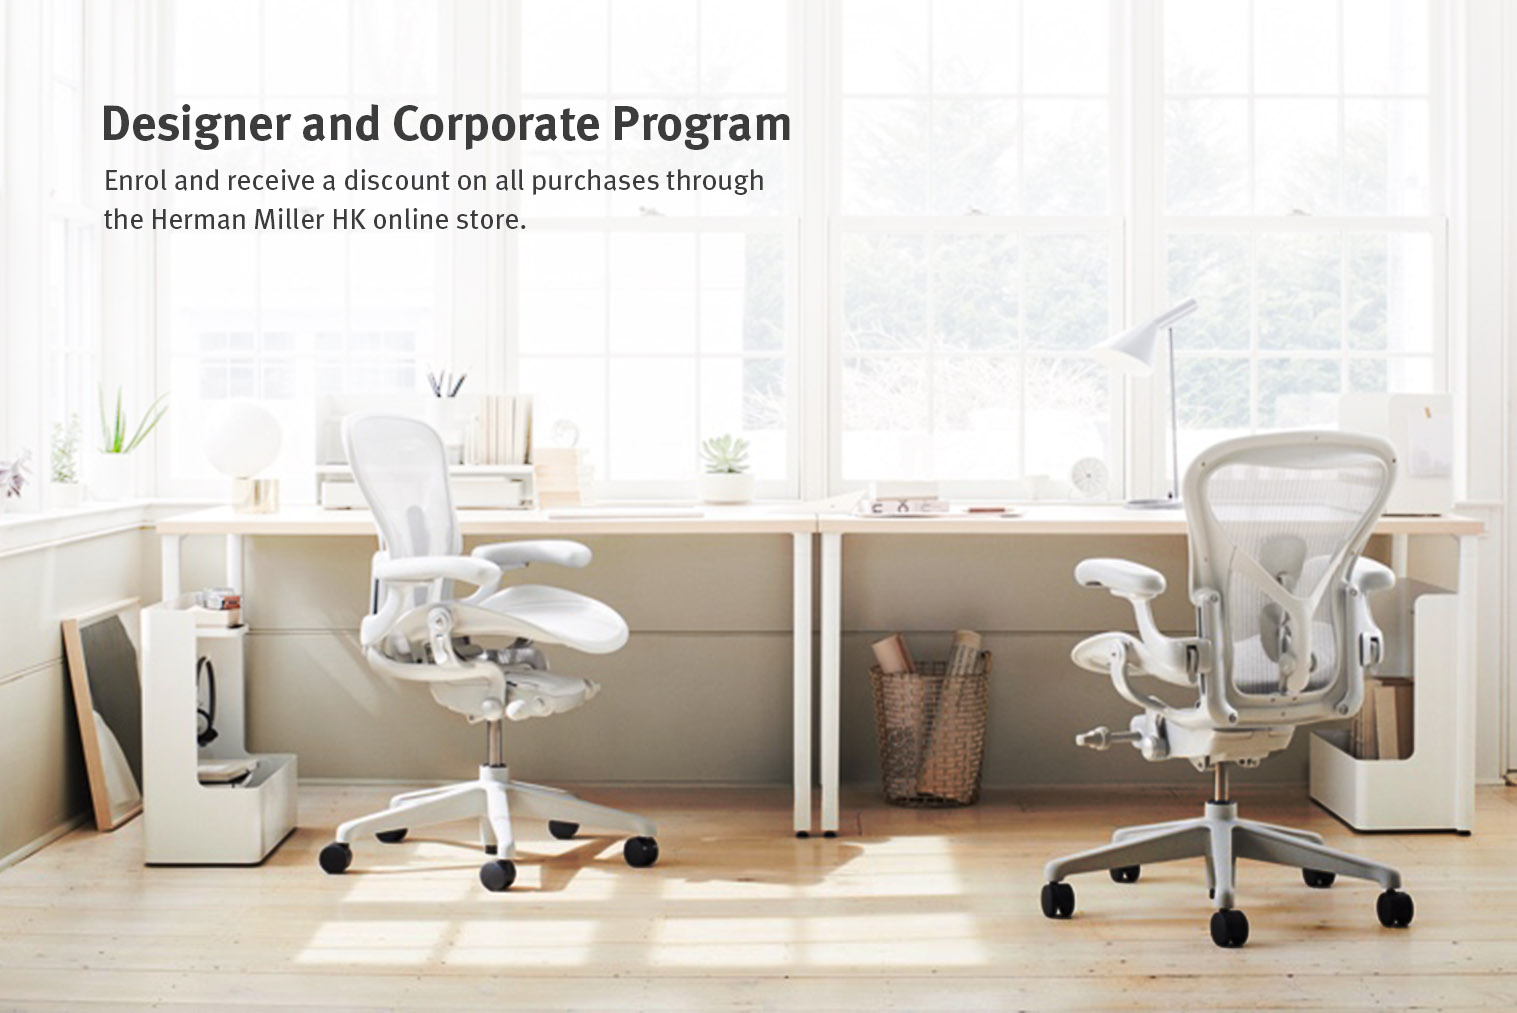 Herman Miller Corporate Program